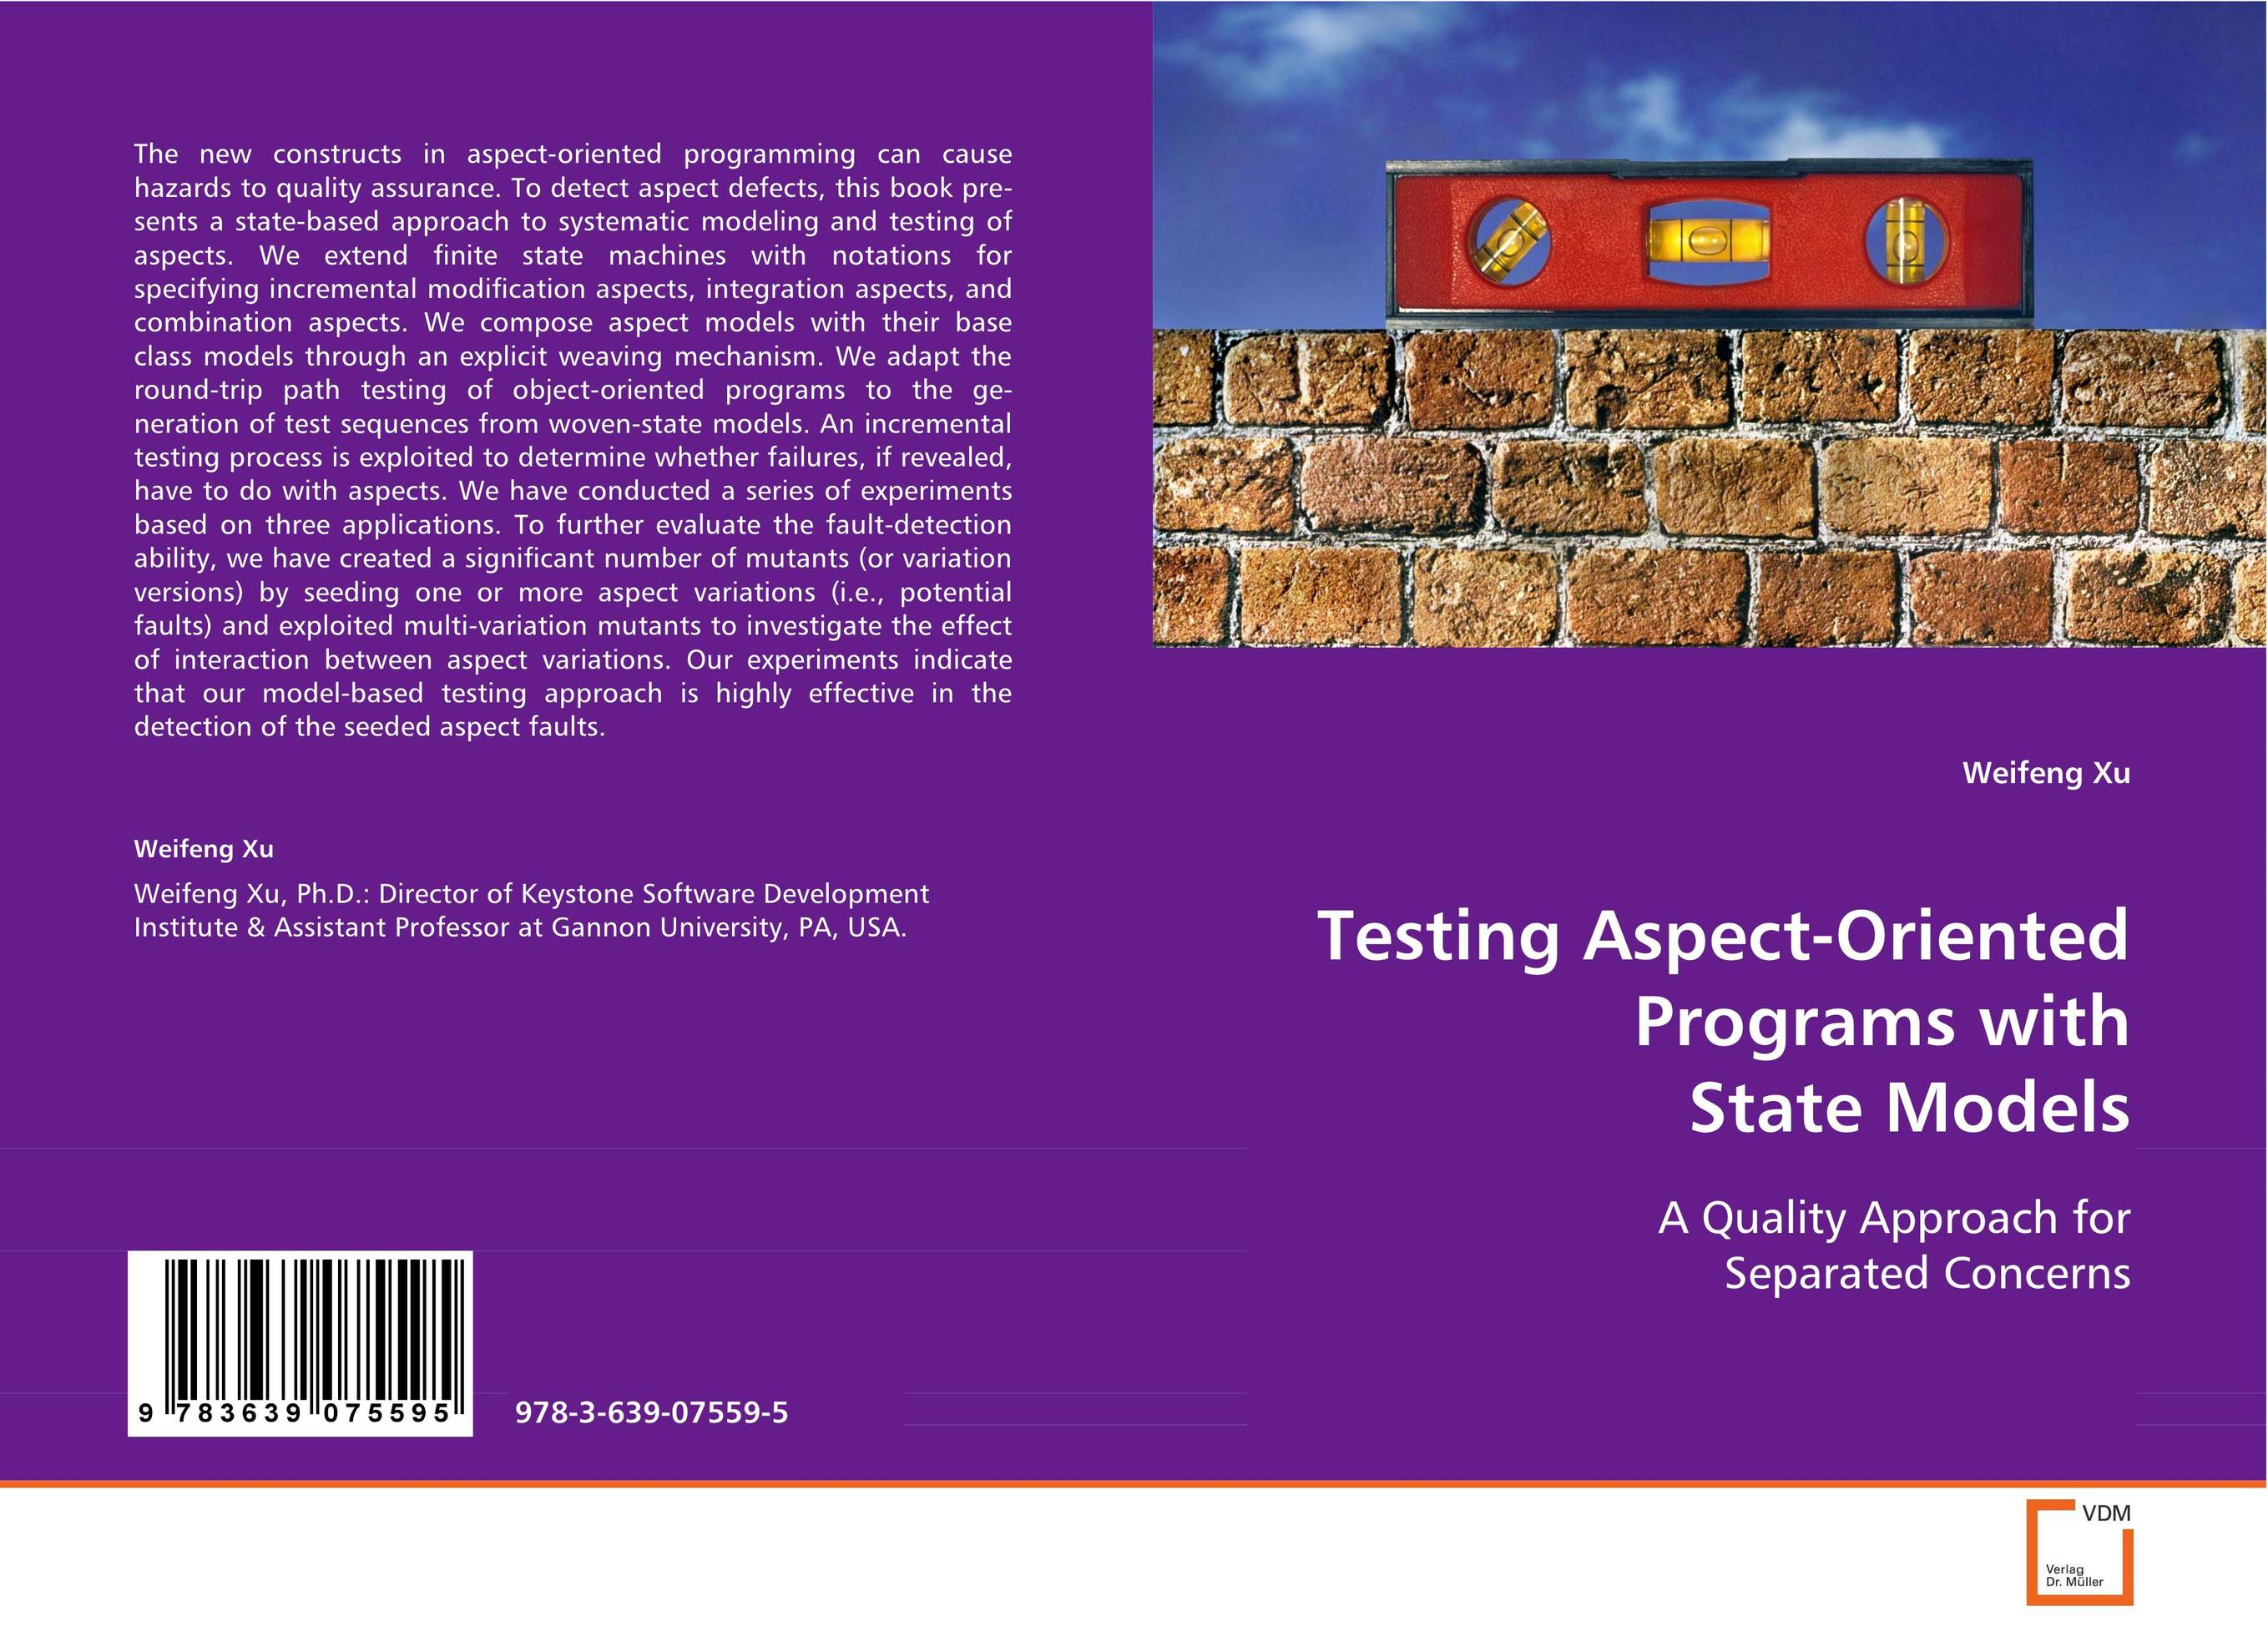 TESTING ASPECT-ORIENTED PROGRAMS WITH STATE MODELS new mutants